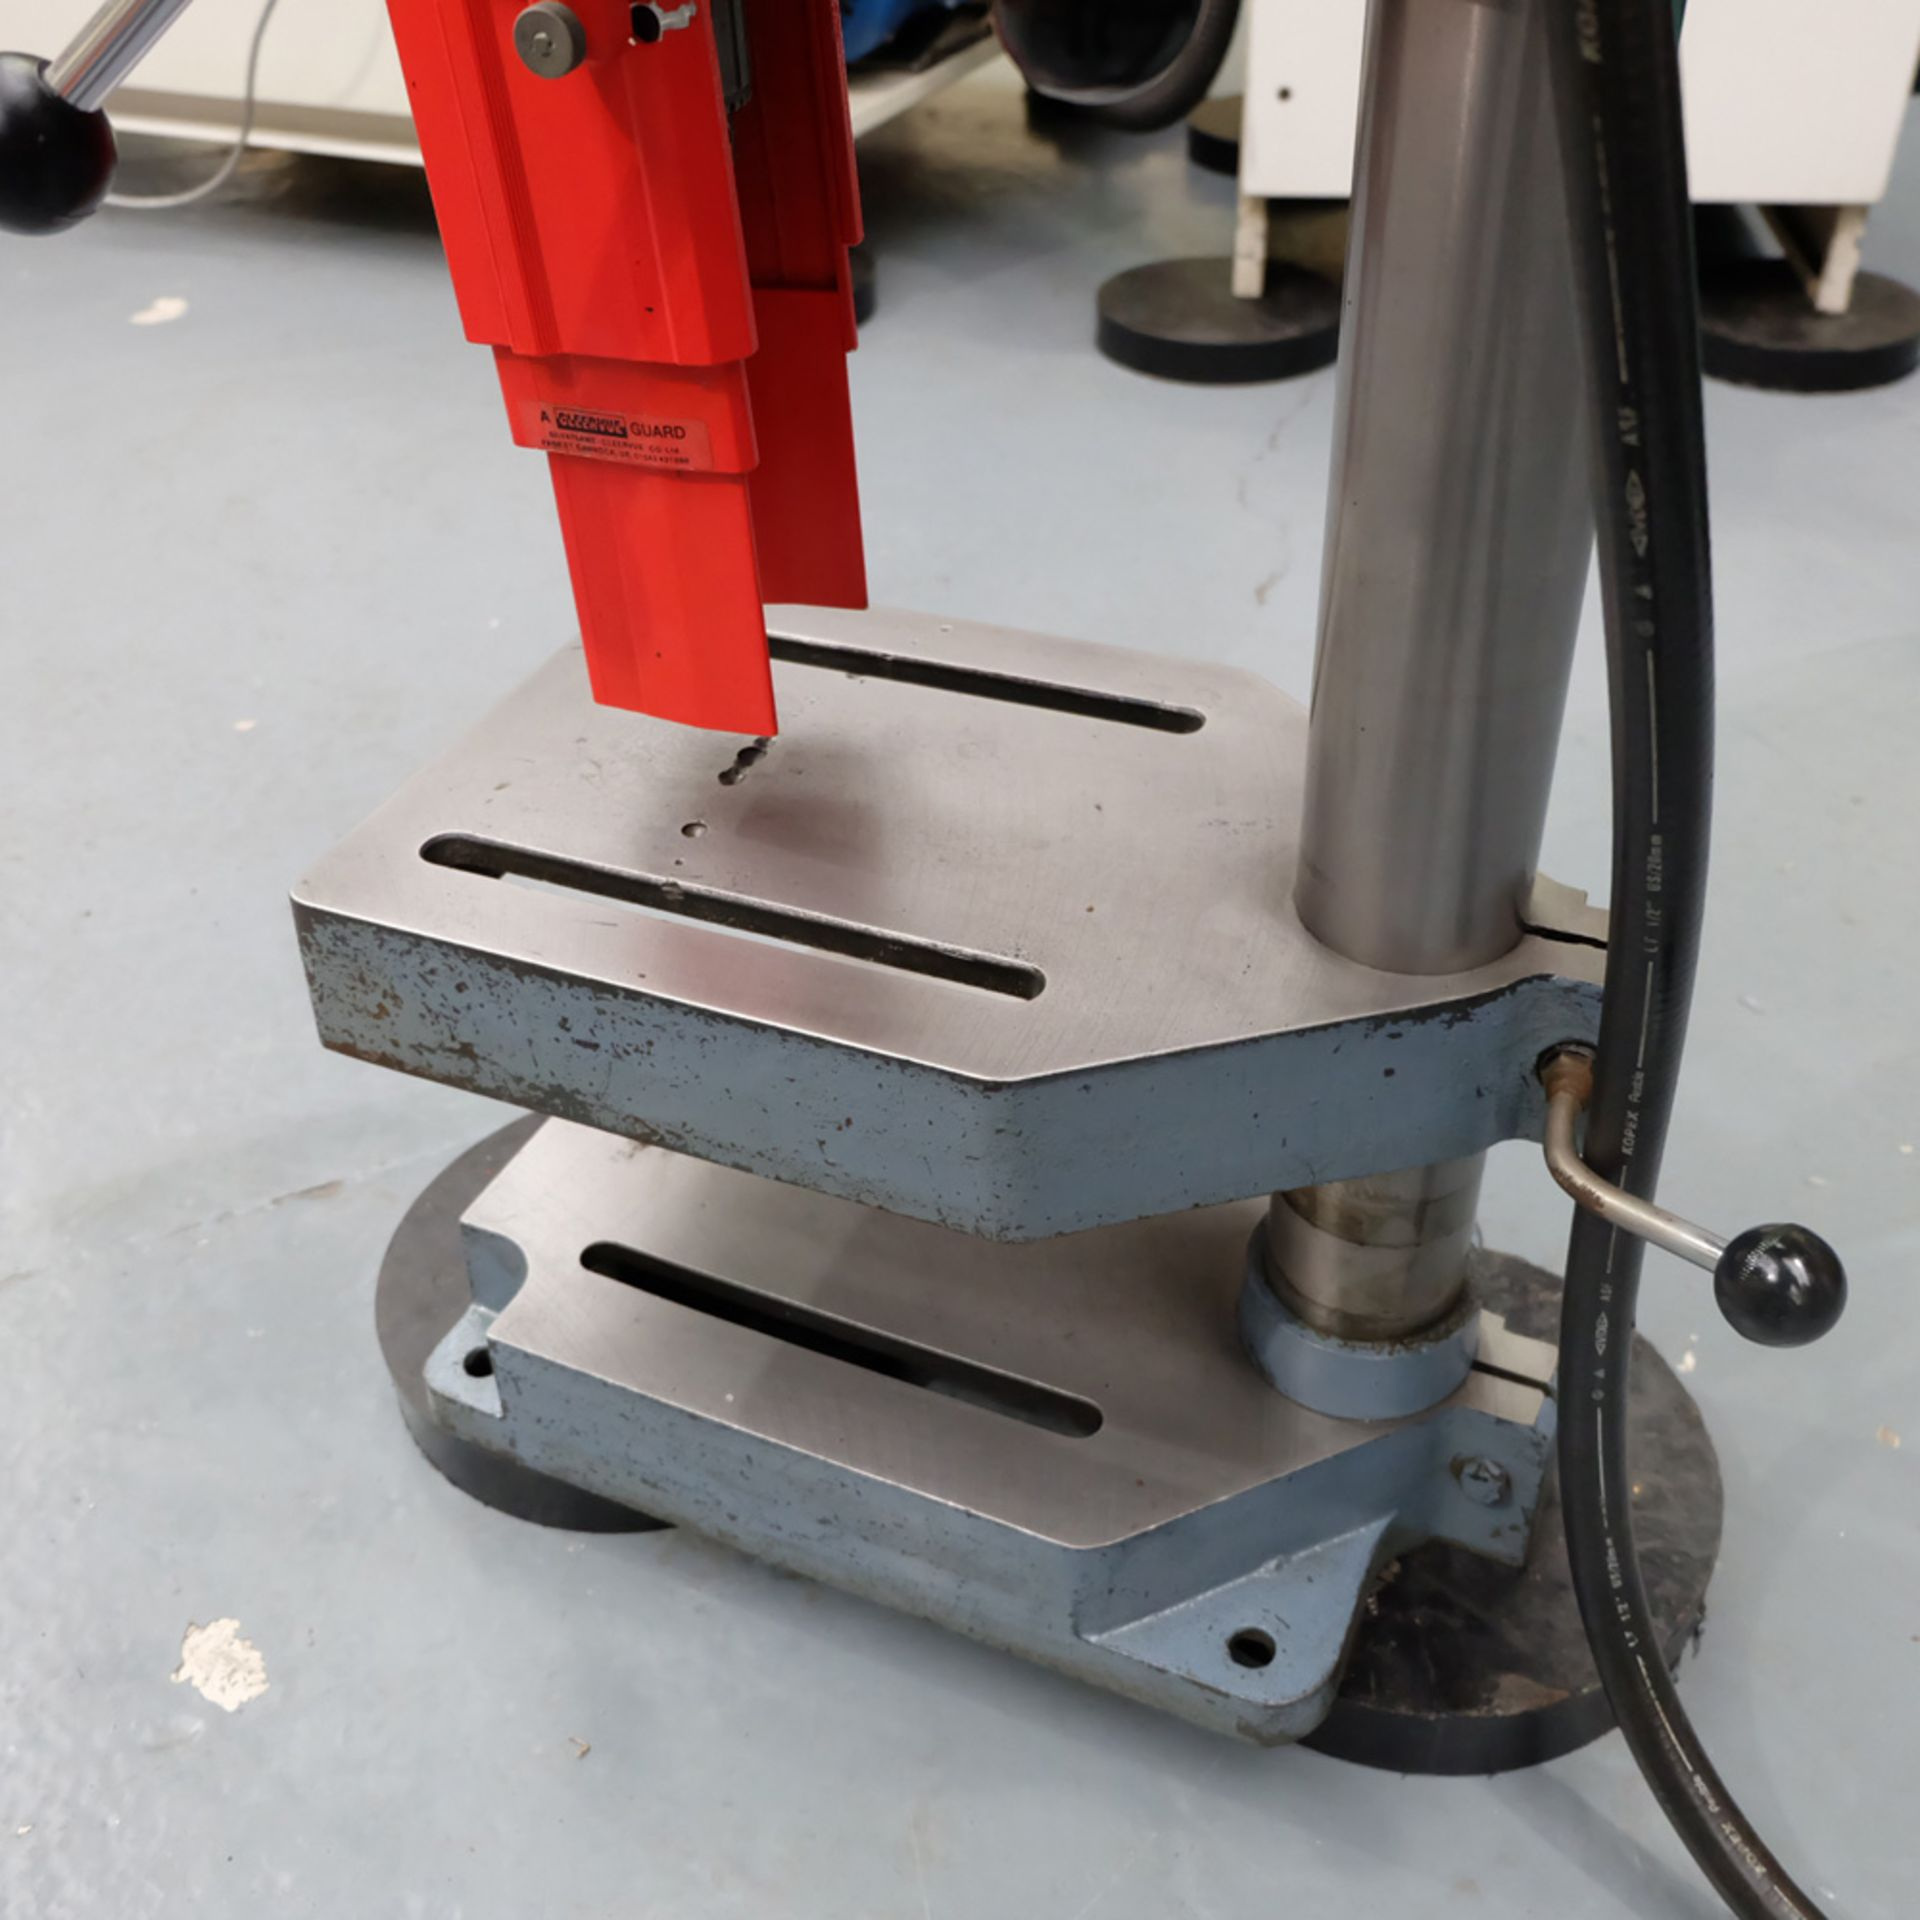 """Meddings Drilltru DTF Bench Drill. Capacity 1/2"""". Table Size 9"""" x 11"""". - Image 5 of 7"""